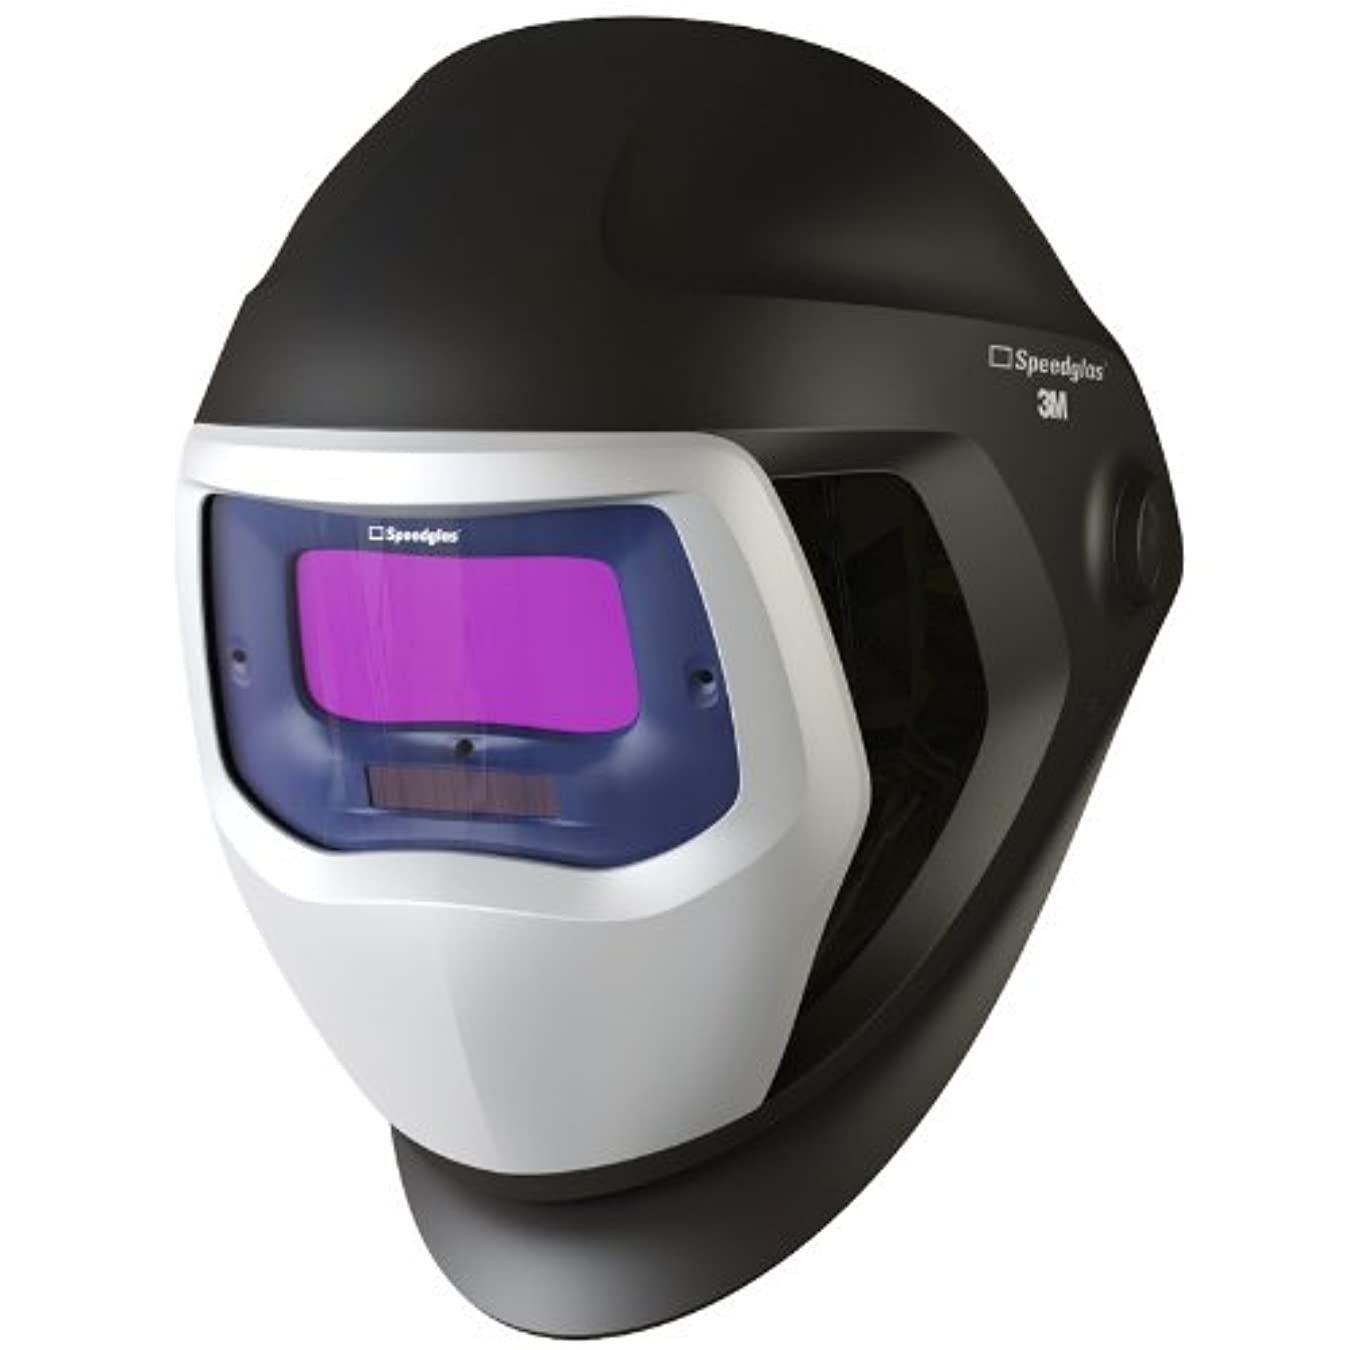 寝る起訴する分析的3M Speedglas Welding Helmet 9100, Welding Safety 06-0100-10HASW with Hard Hat Adapter, SideWindows and Speedglas Auto-Darkening Filter 9100V, Shades 5, 8-13 1 (Hard Hat not included) by 3M